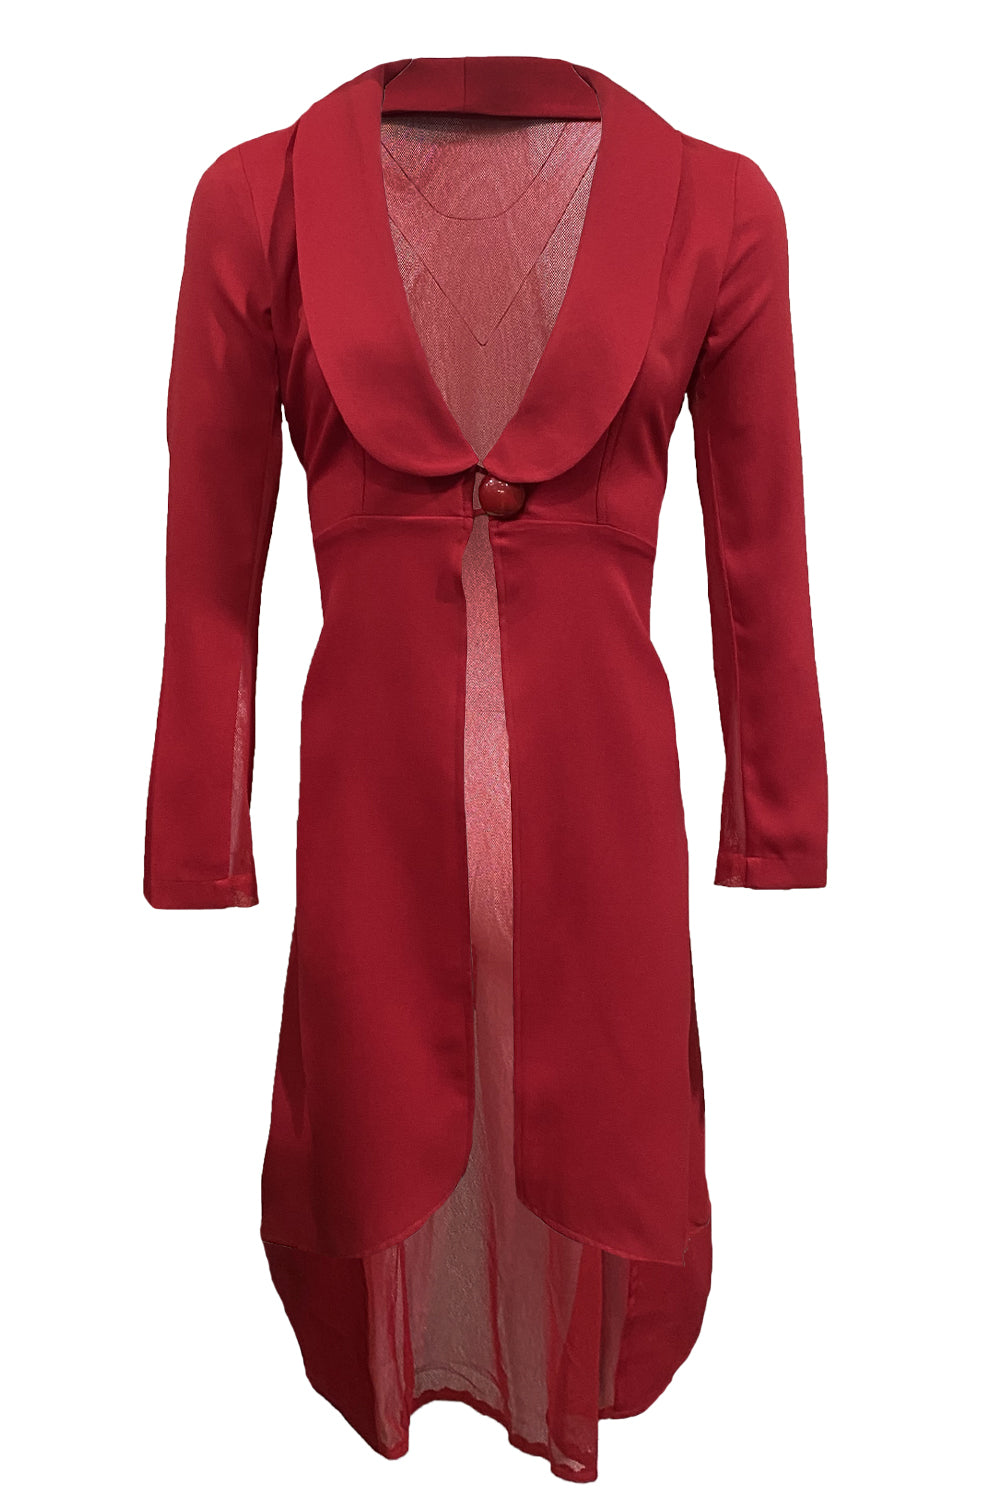 Brisa Bailey Jacket - Raspberry